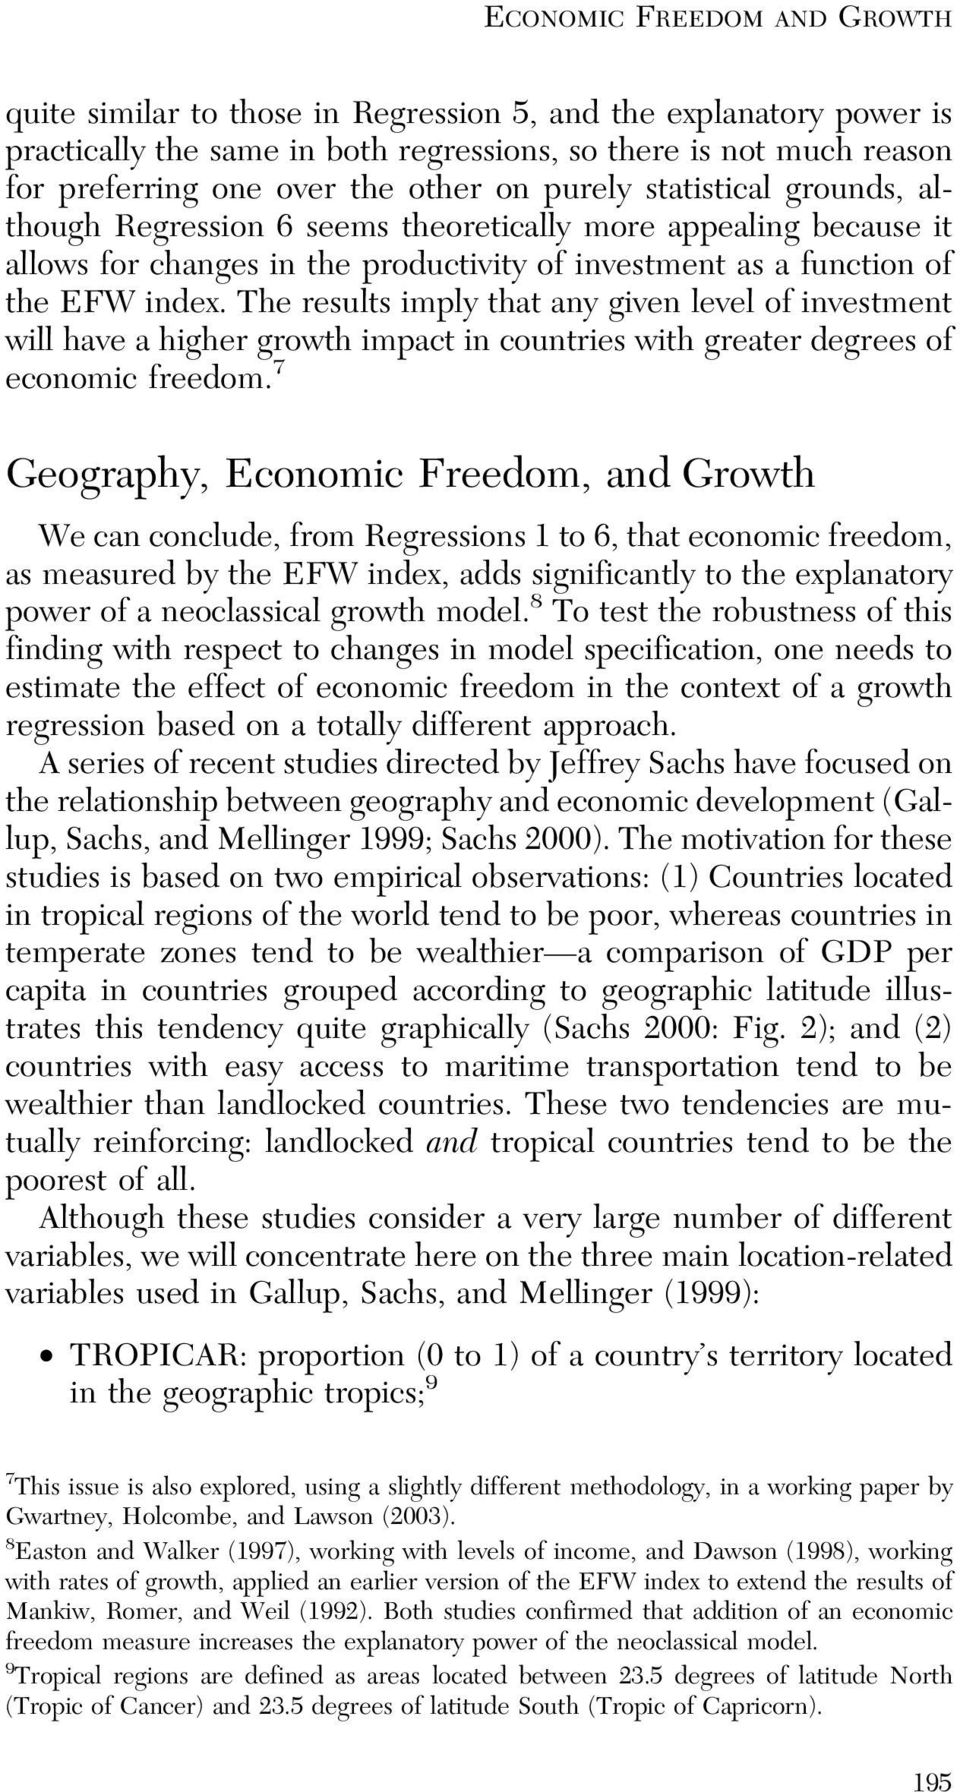 The results imply that any given level of investment will have a higher growth impact in countries with greater degrees of economic freedom.